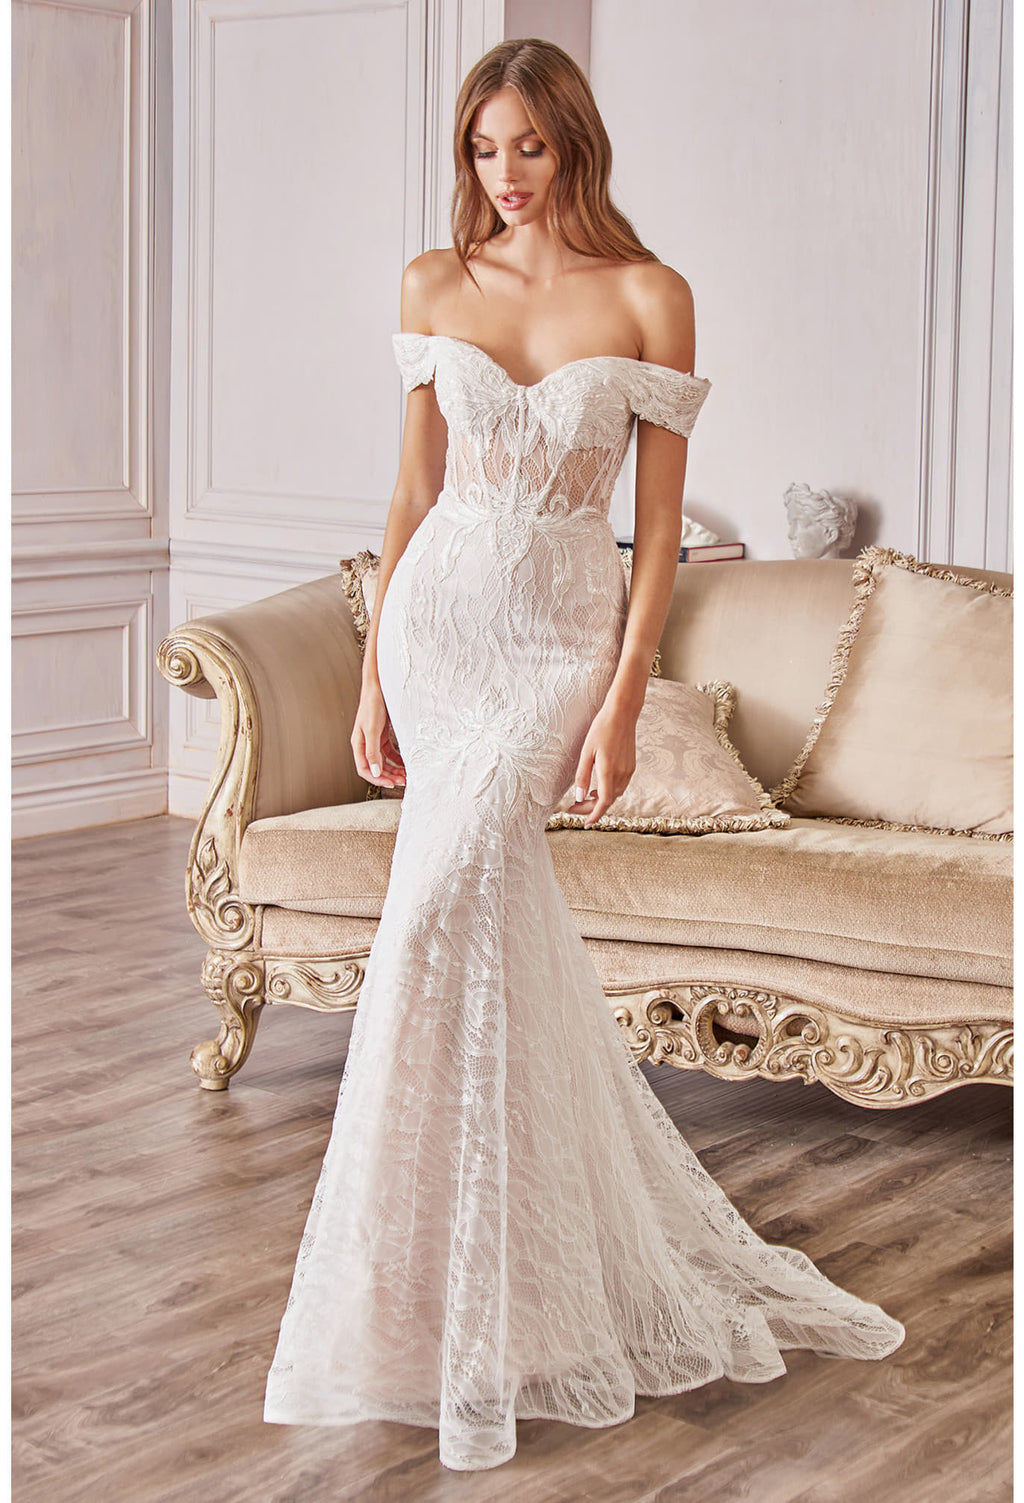 LIZ LACE OFF THE SHOULDER MERMAID GOWN - KC Haute Couture Wedding Dress